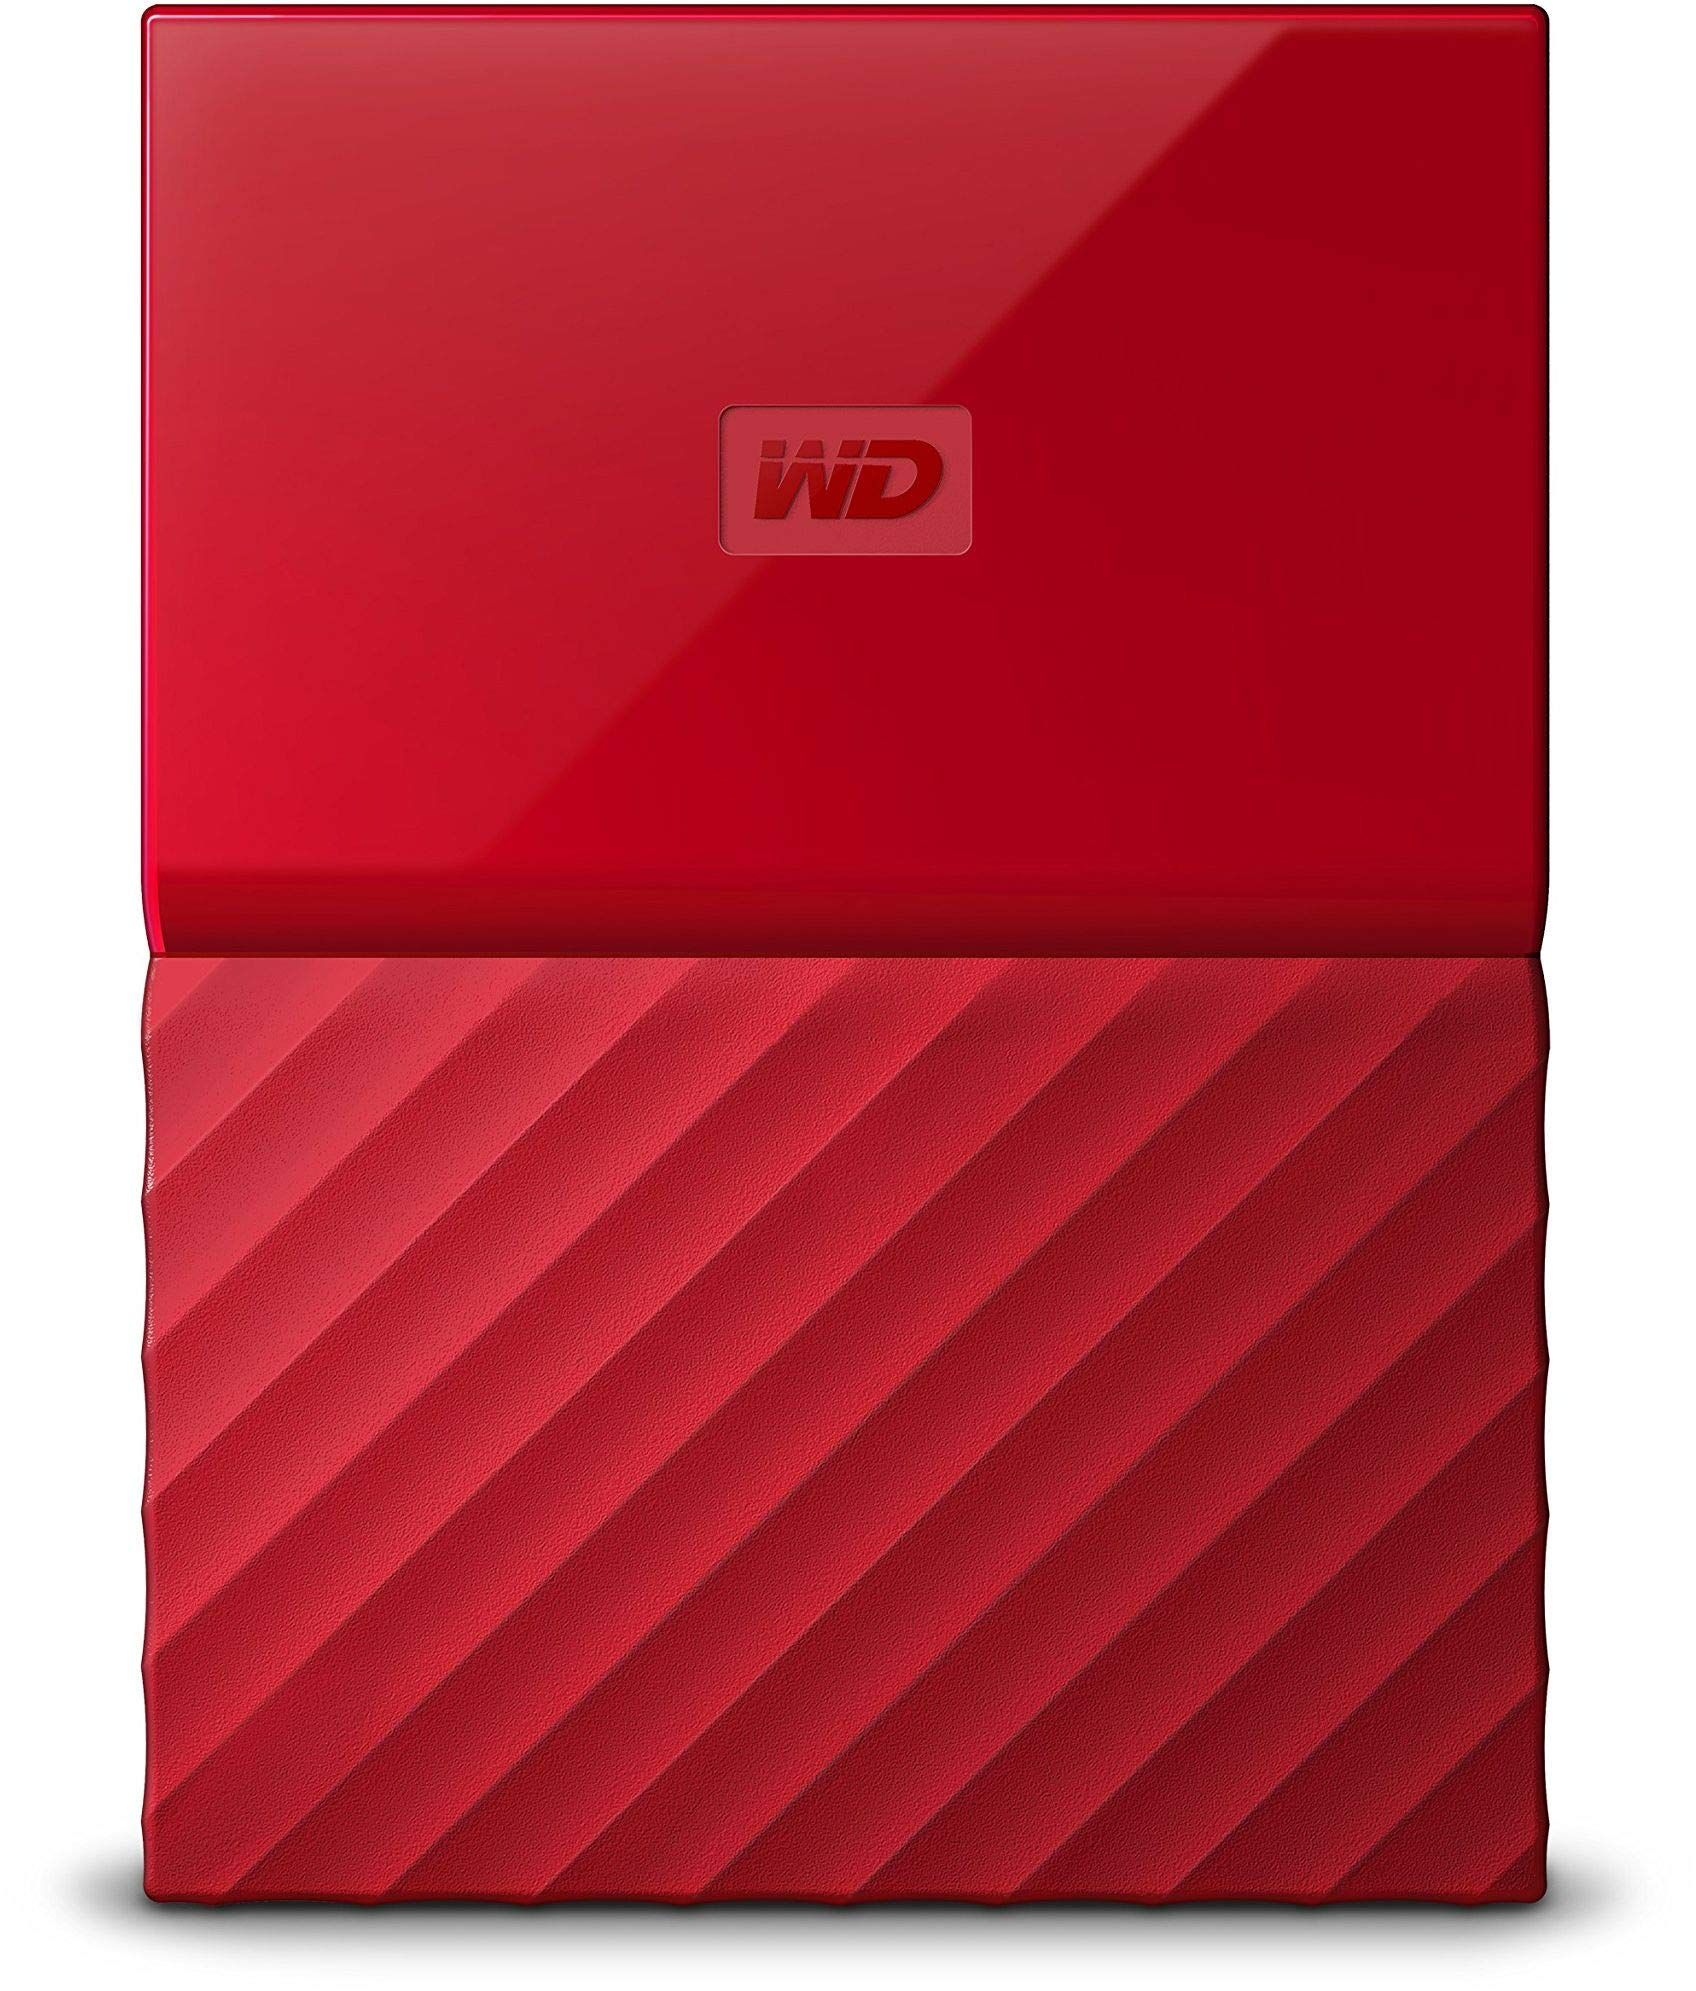 Western Digital My Passport 2TB Portable External Hard Drive (Red) with Automatic Backup and Hardware Encryption & Password Protection product image